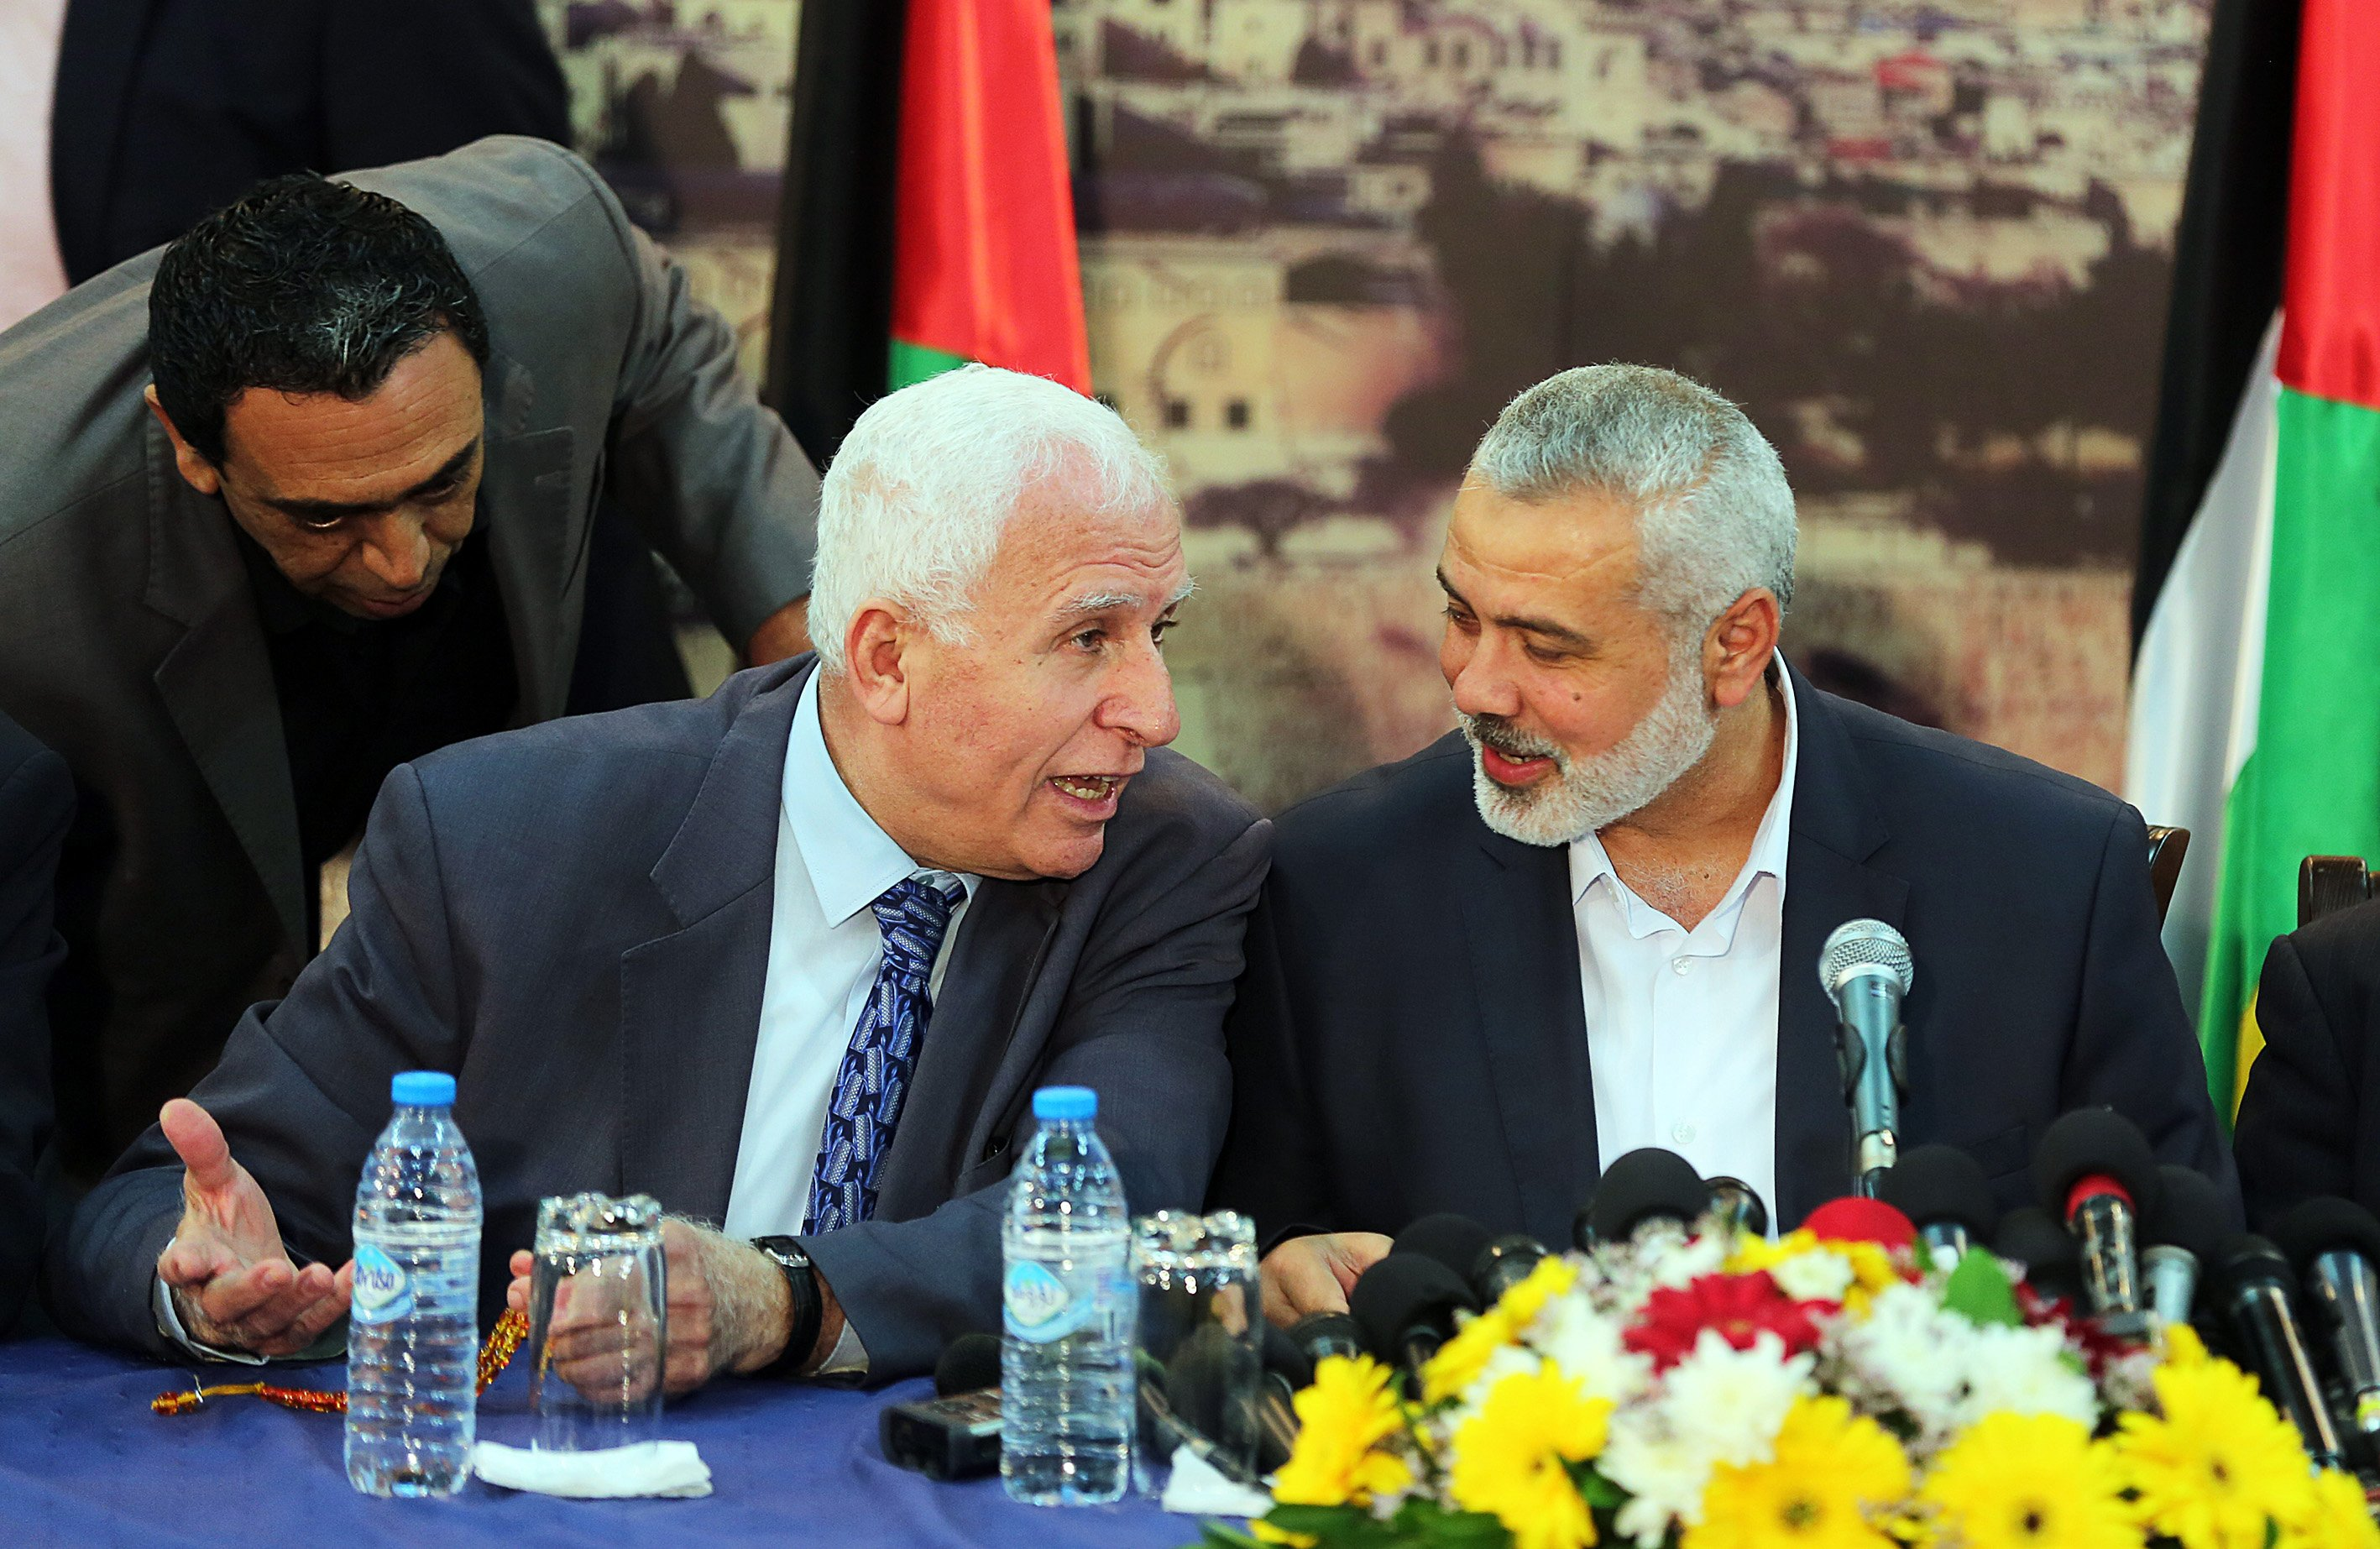 Fatah movement leader Azzam al-Ahmad, left, and Palestinian Prime Minister Ismail Haniyeh speak during a press conference following the meeting to end Palestinian divisions between Fatah and Hamas movement in Gaza City on April 23, 2014